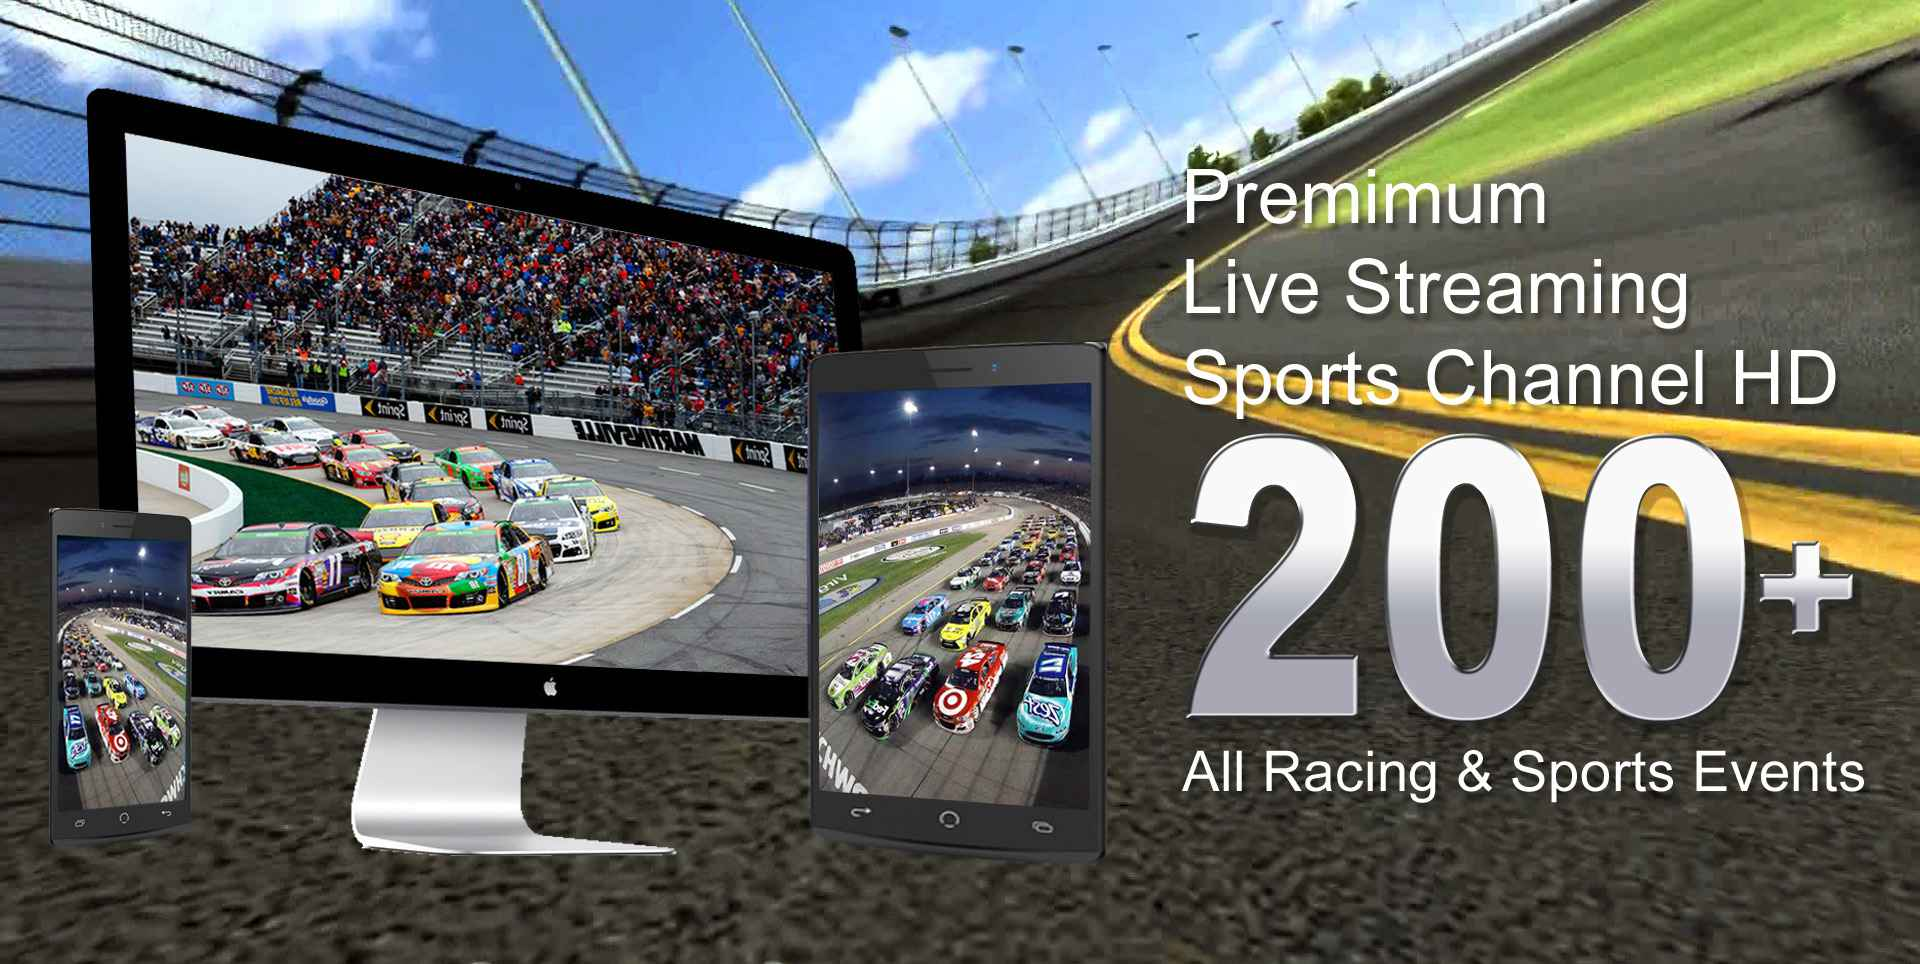 250-nascar-great-clips-live-internet-tv